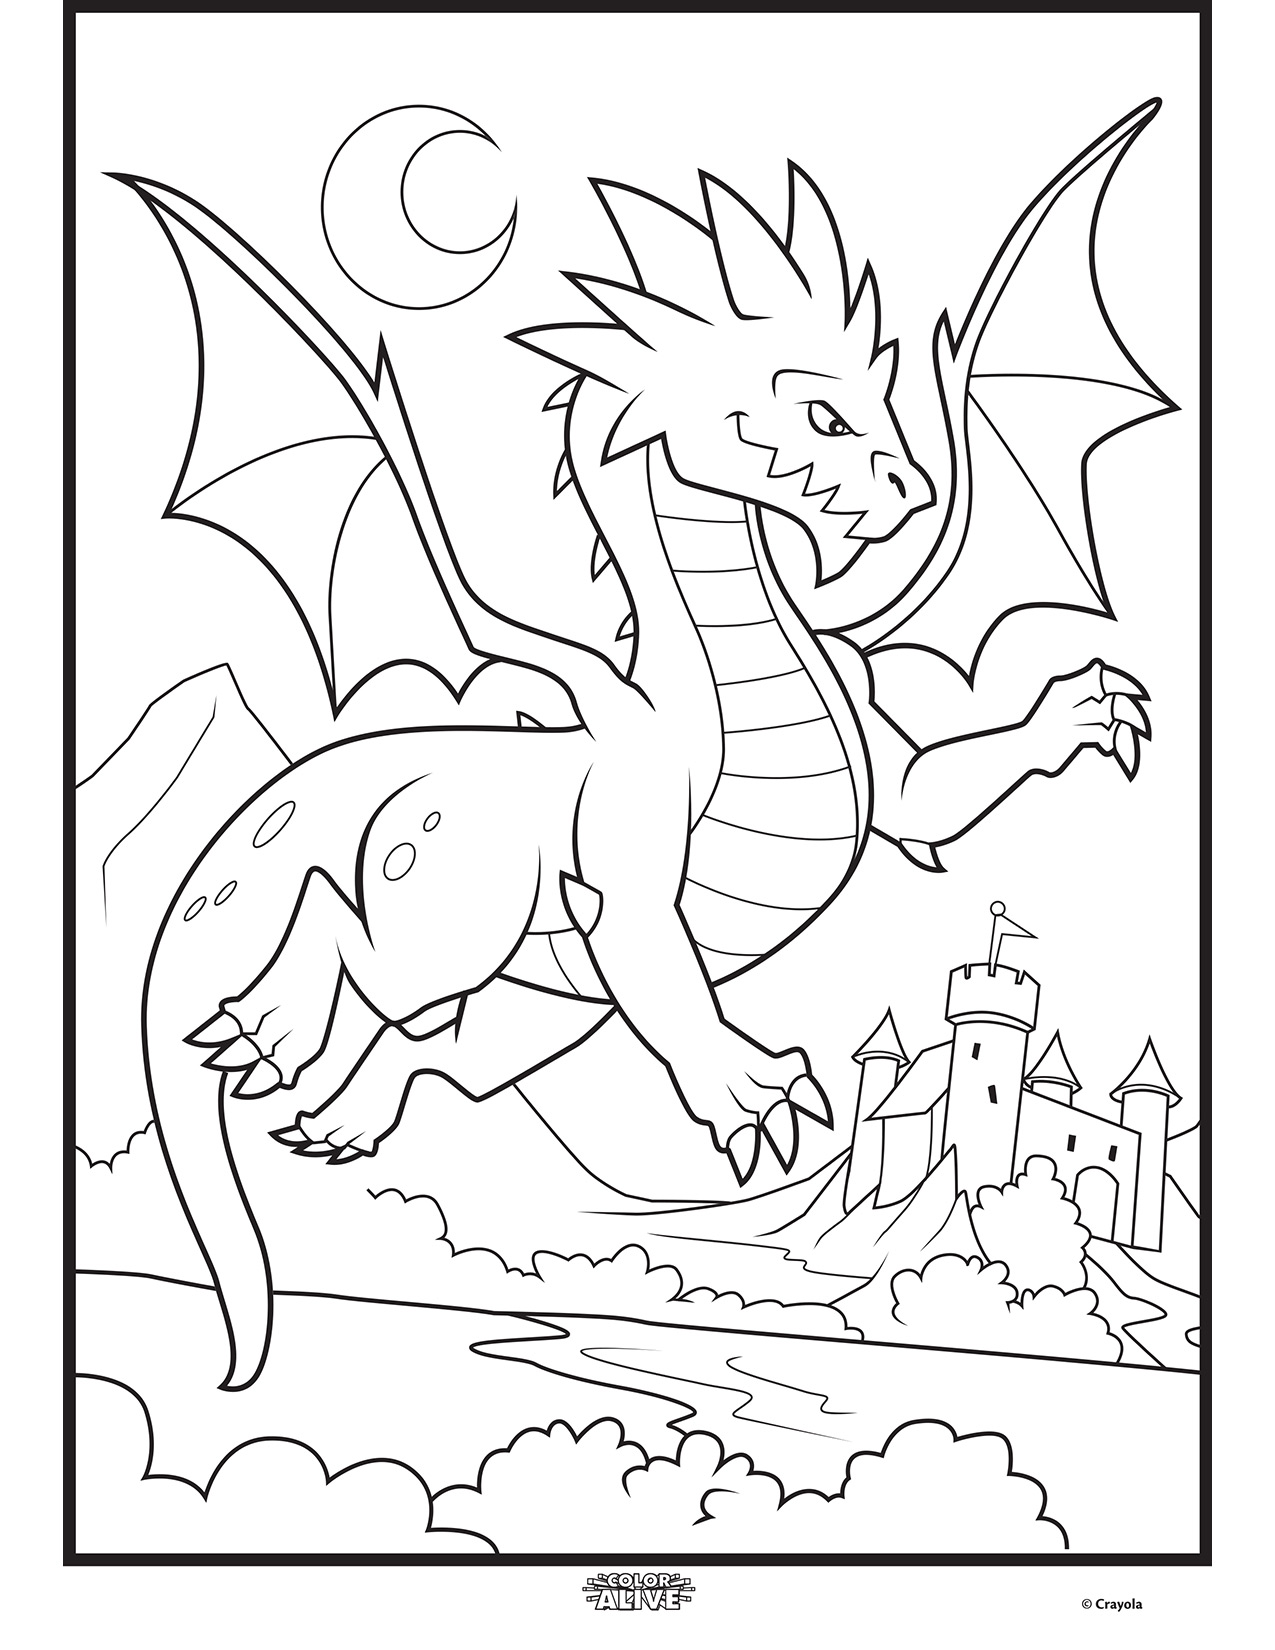 coloring pages 8 march bratz coloring pages free for kids march